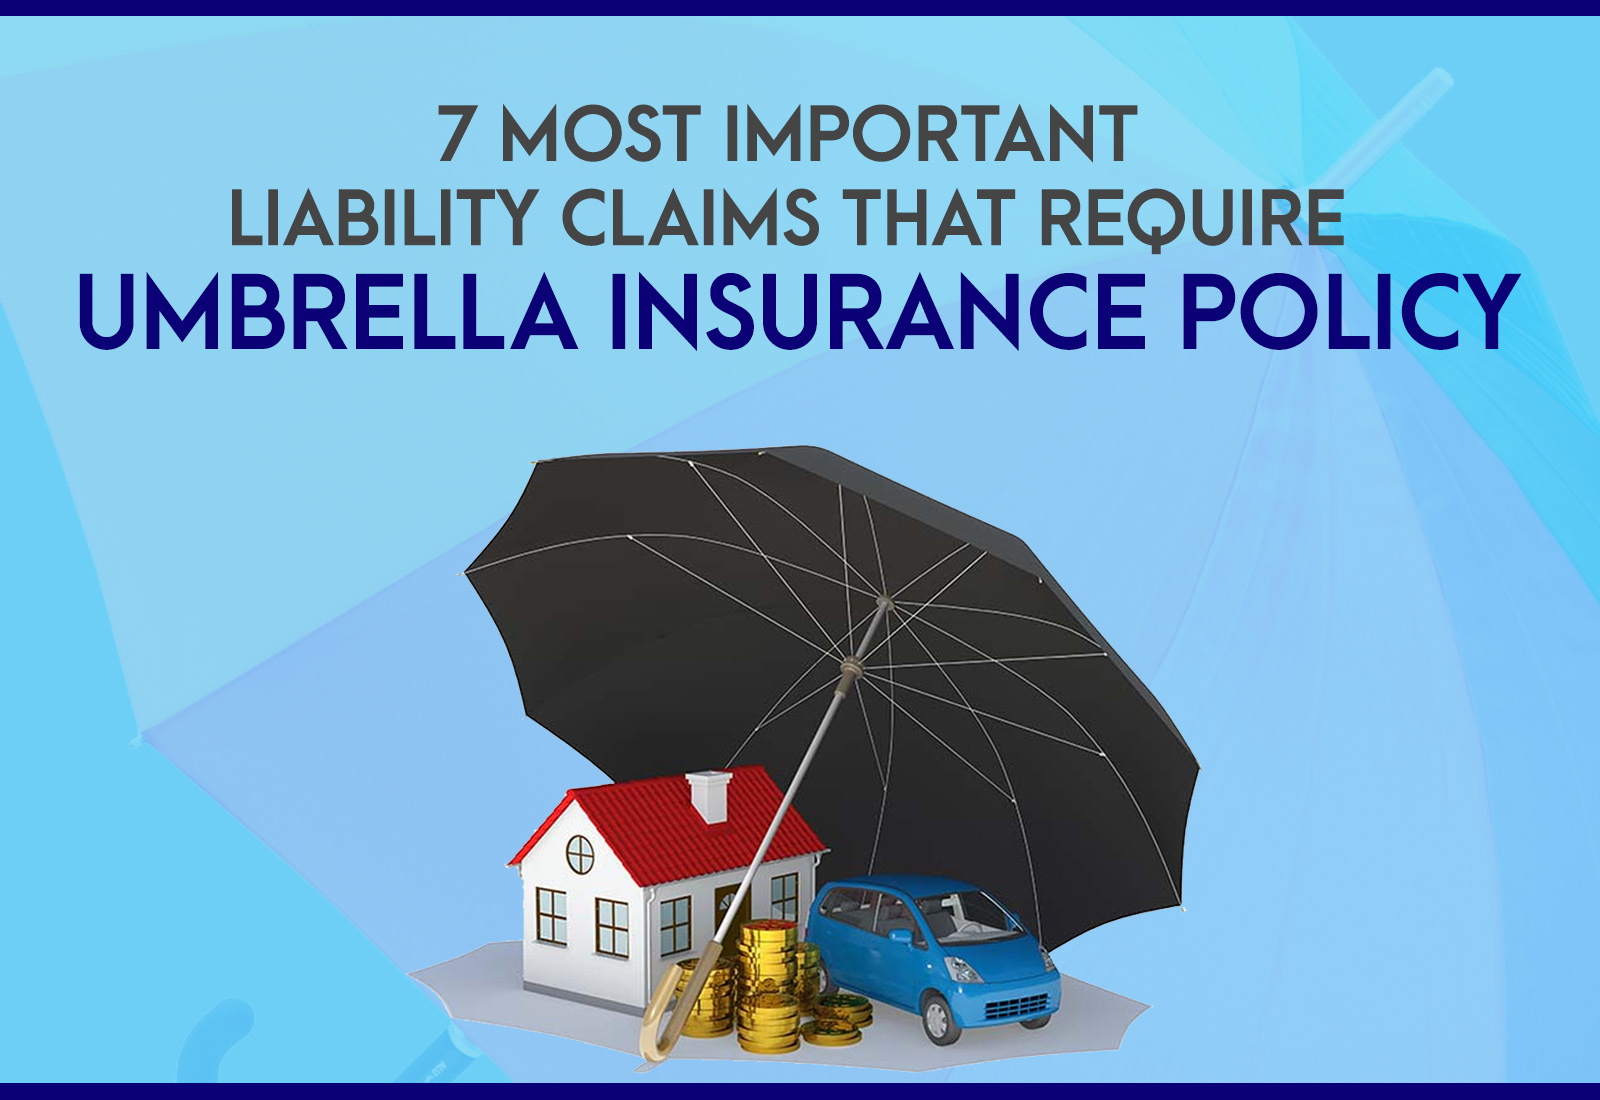 7 Most Important Liability Claims that Require Umbrella Insurance Policy